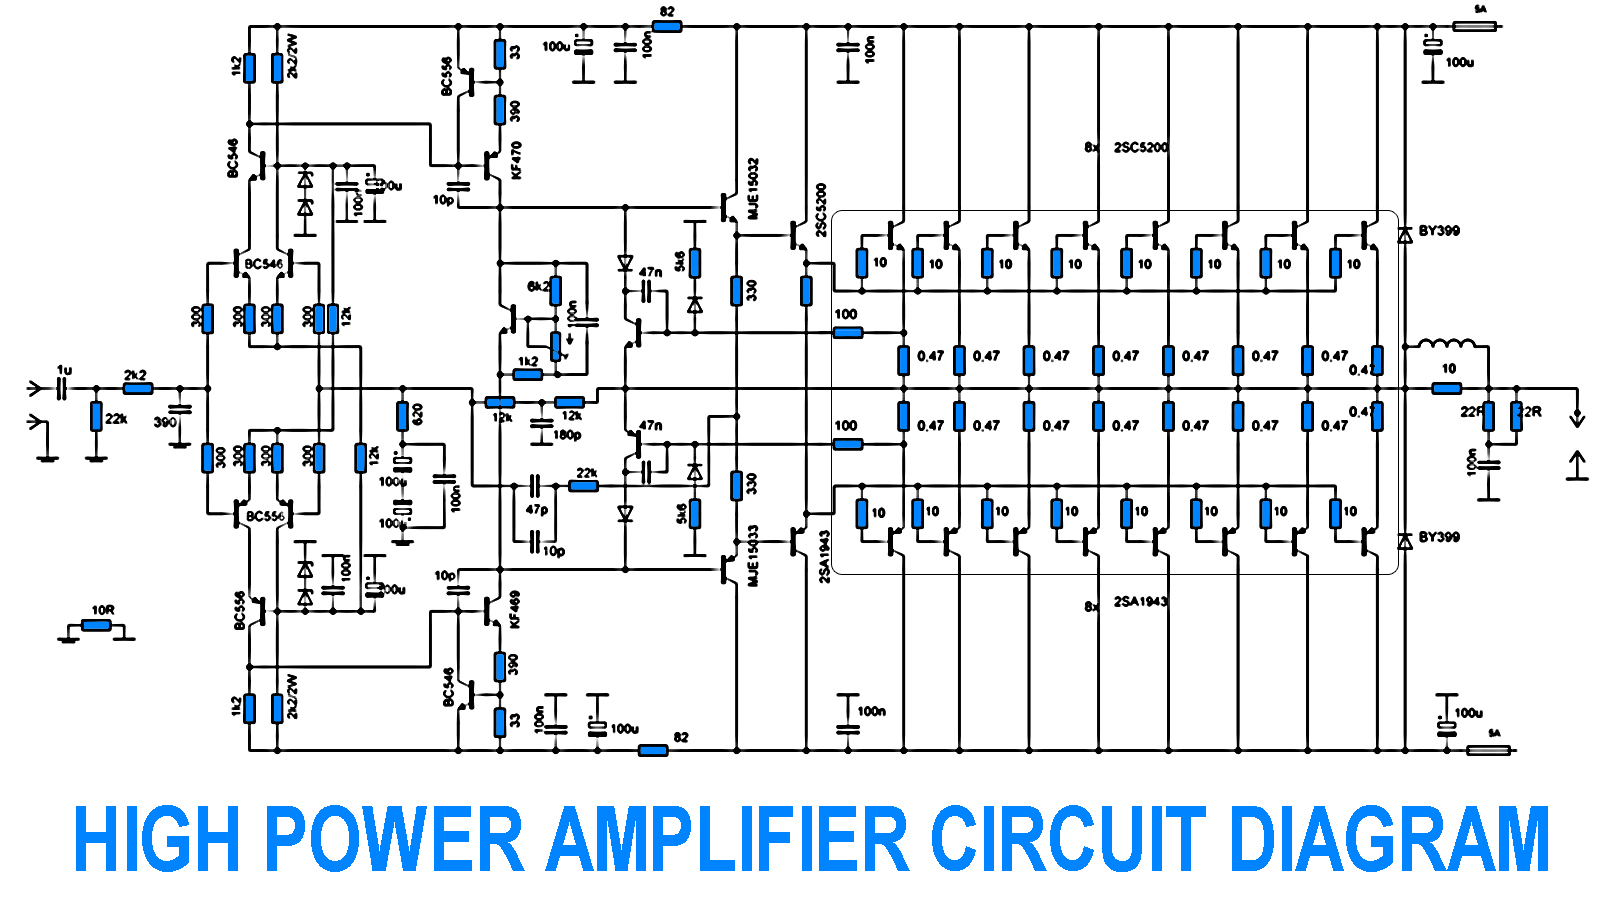 diagram for everything transistor 2sc5200 amplifier circuittransistor 2sc5200 amplifier circuit